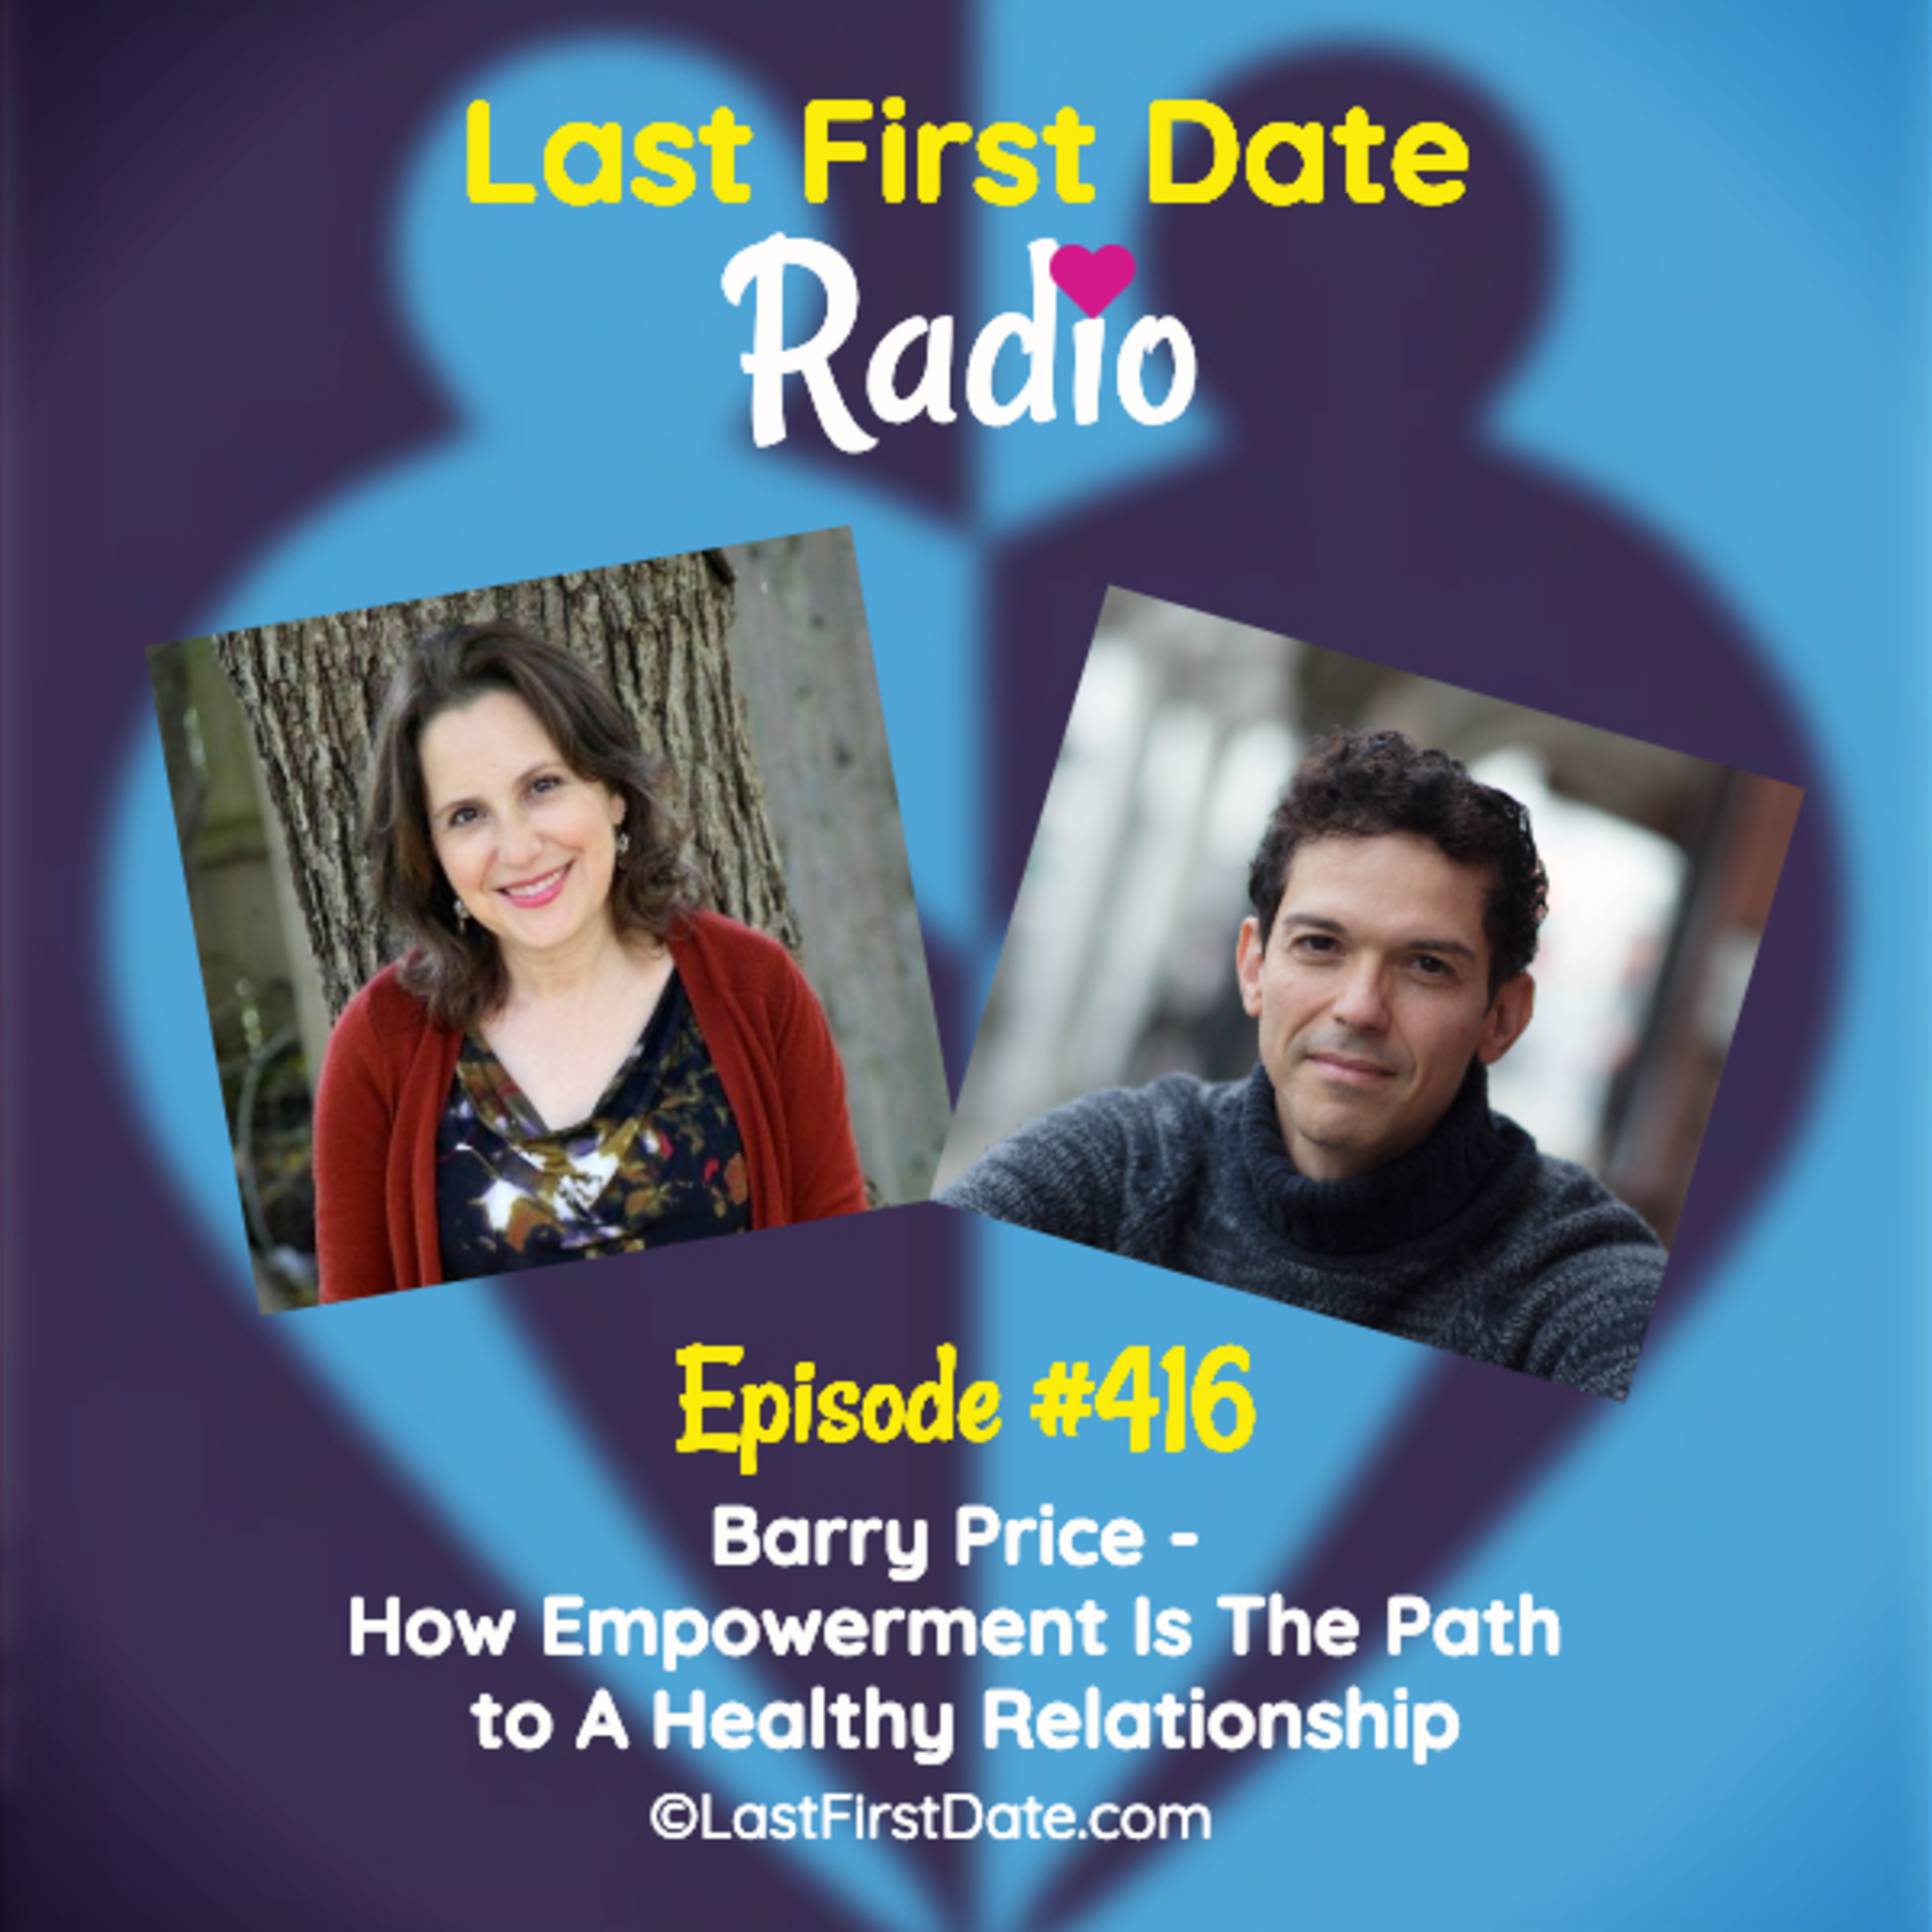 Last First Date Radio - EP 416: Barry Price - How Empowerment Is The Path to A Healthy Relationship